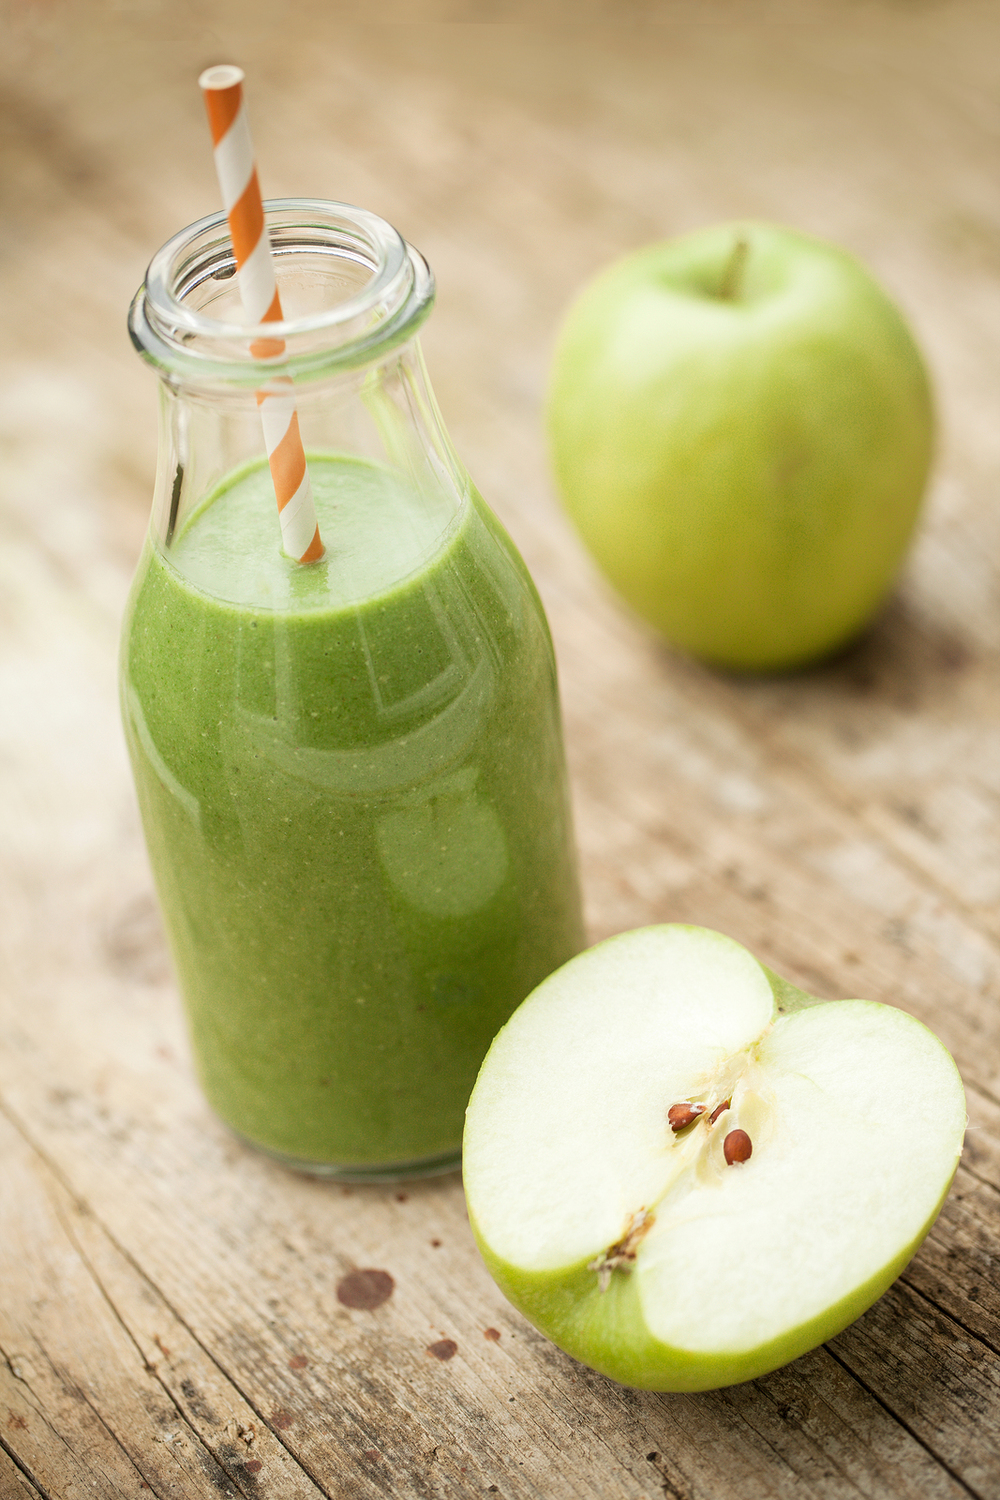 bigstock-Green-Smoothie-81572291.jpg